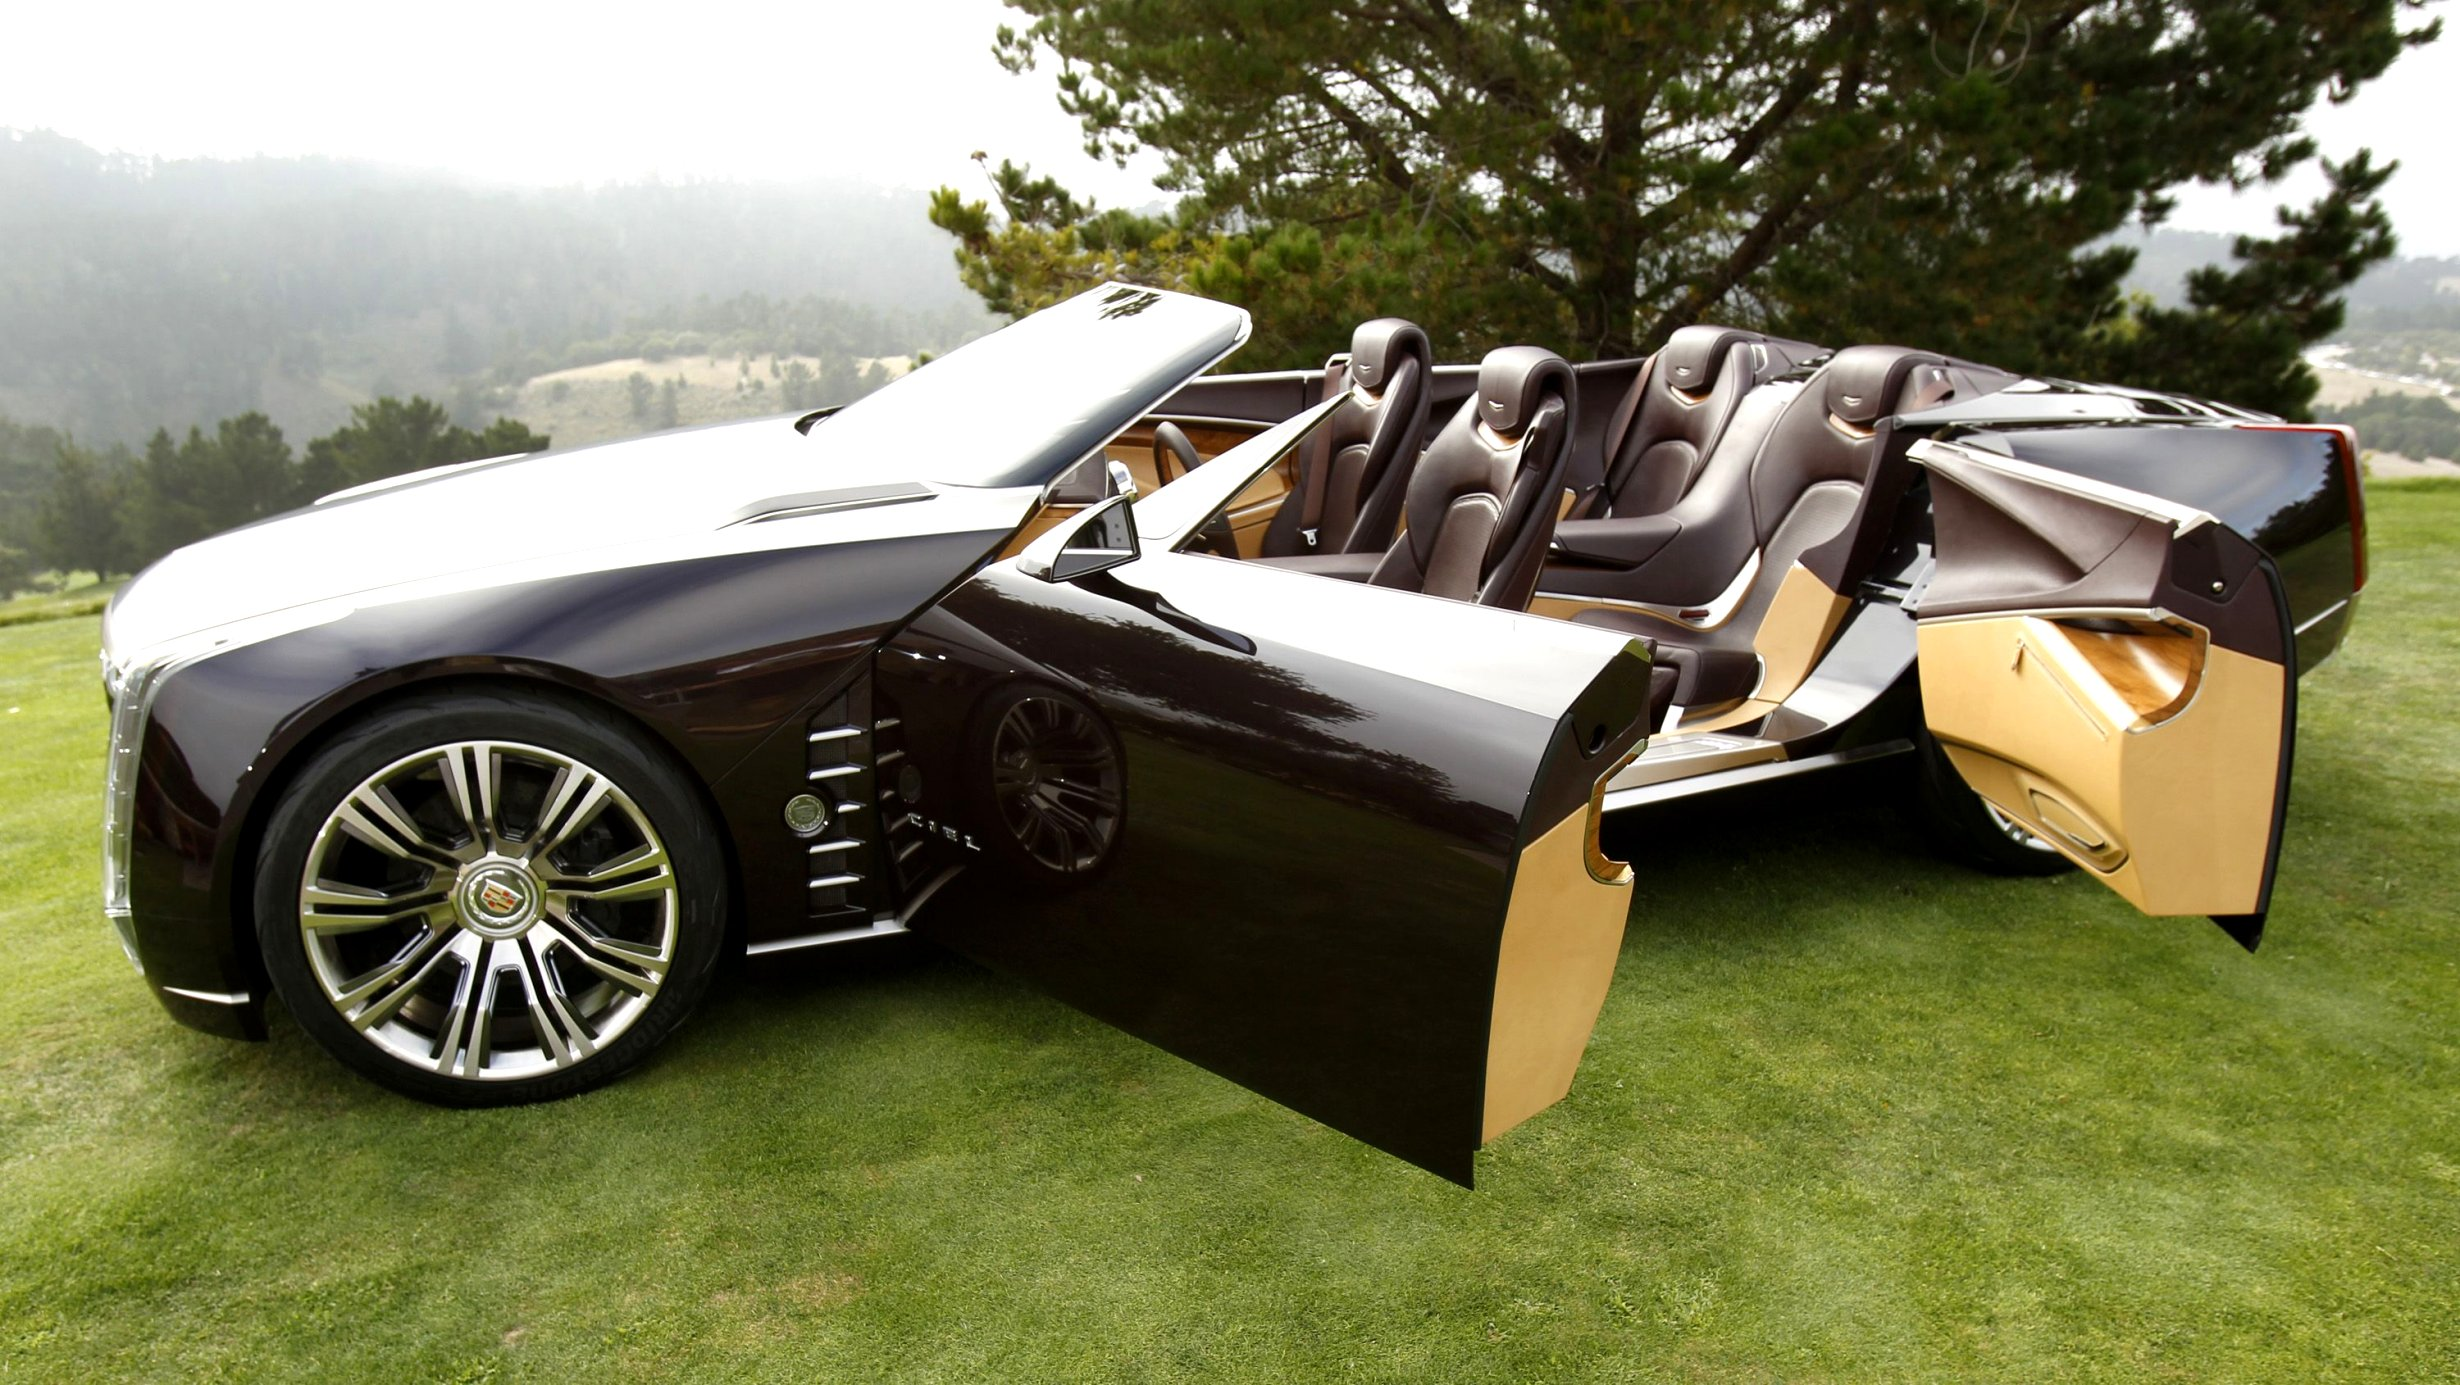 cadillac convertible 2020 New Concept